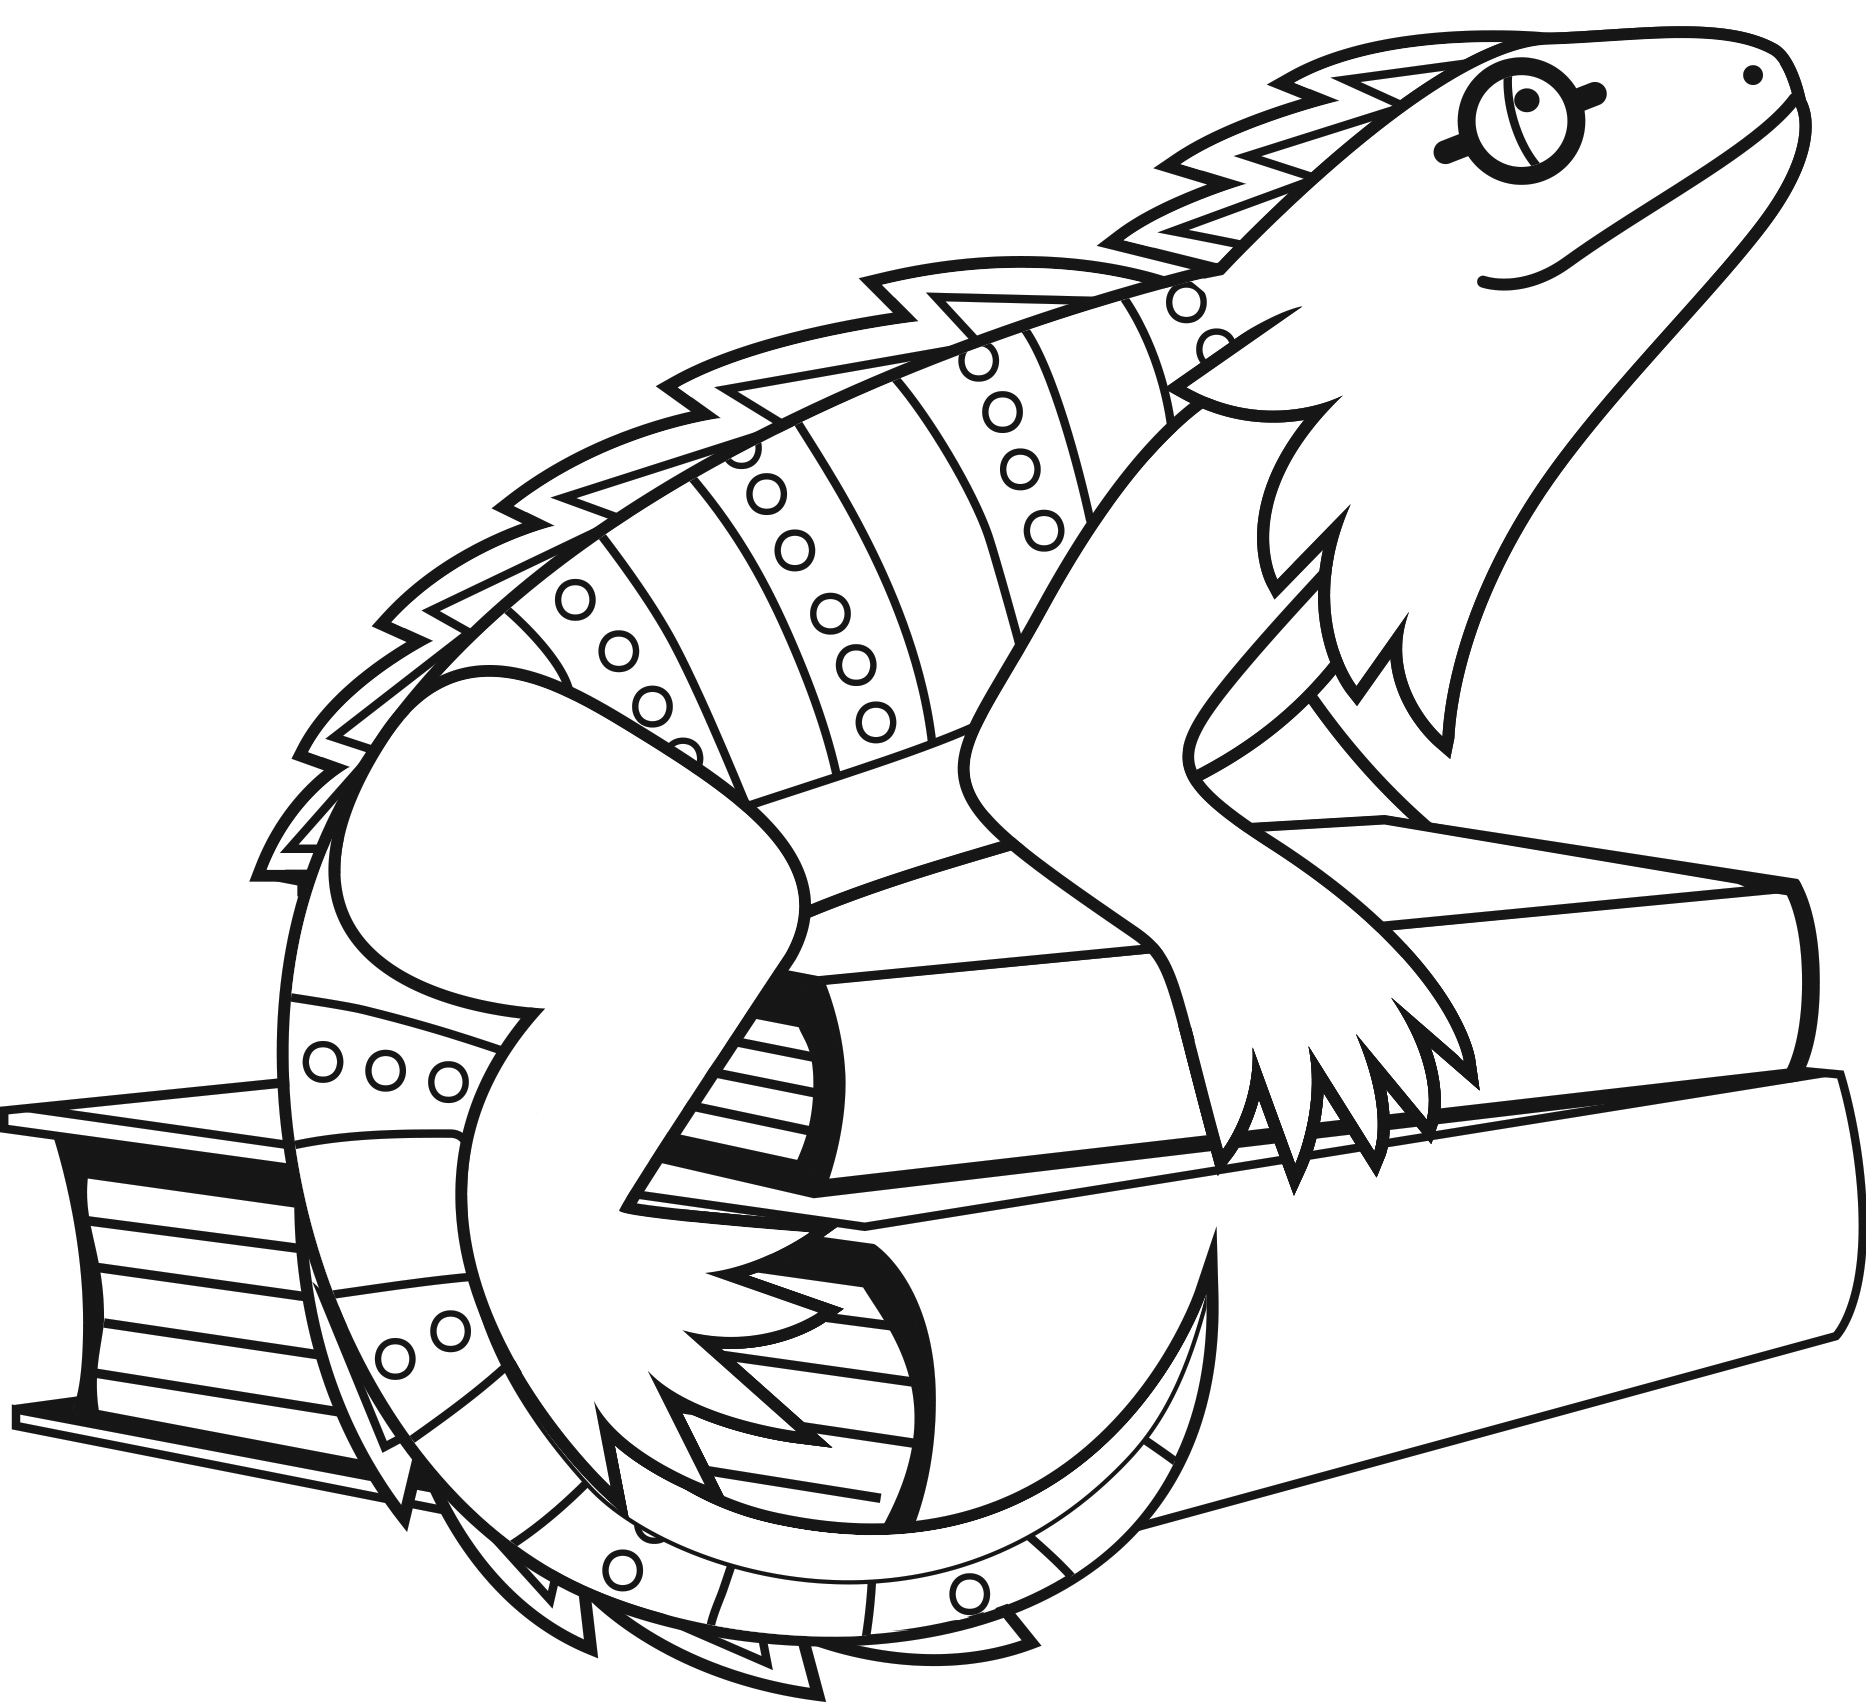 Iguana coloring pages printable coloring pages for Iguana coloring pages